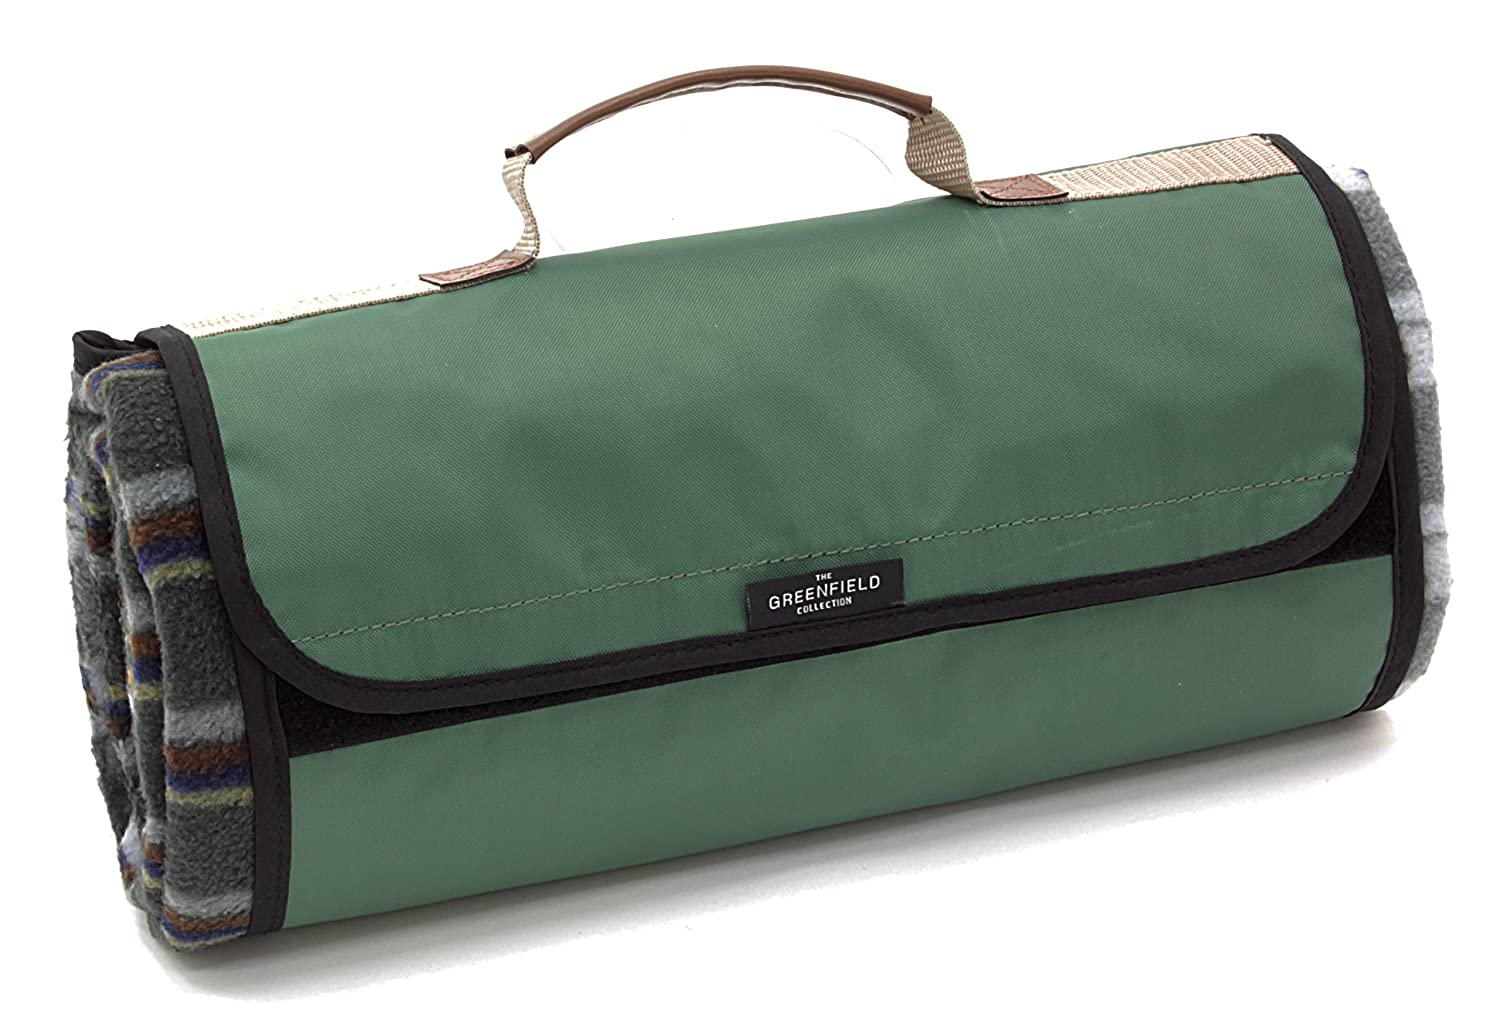 Greenfield Collection Luxury Forest Green Plaid Moisture Resistant Picnic Blanket Kondor L&G PB002H Rug Waterproof